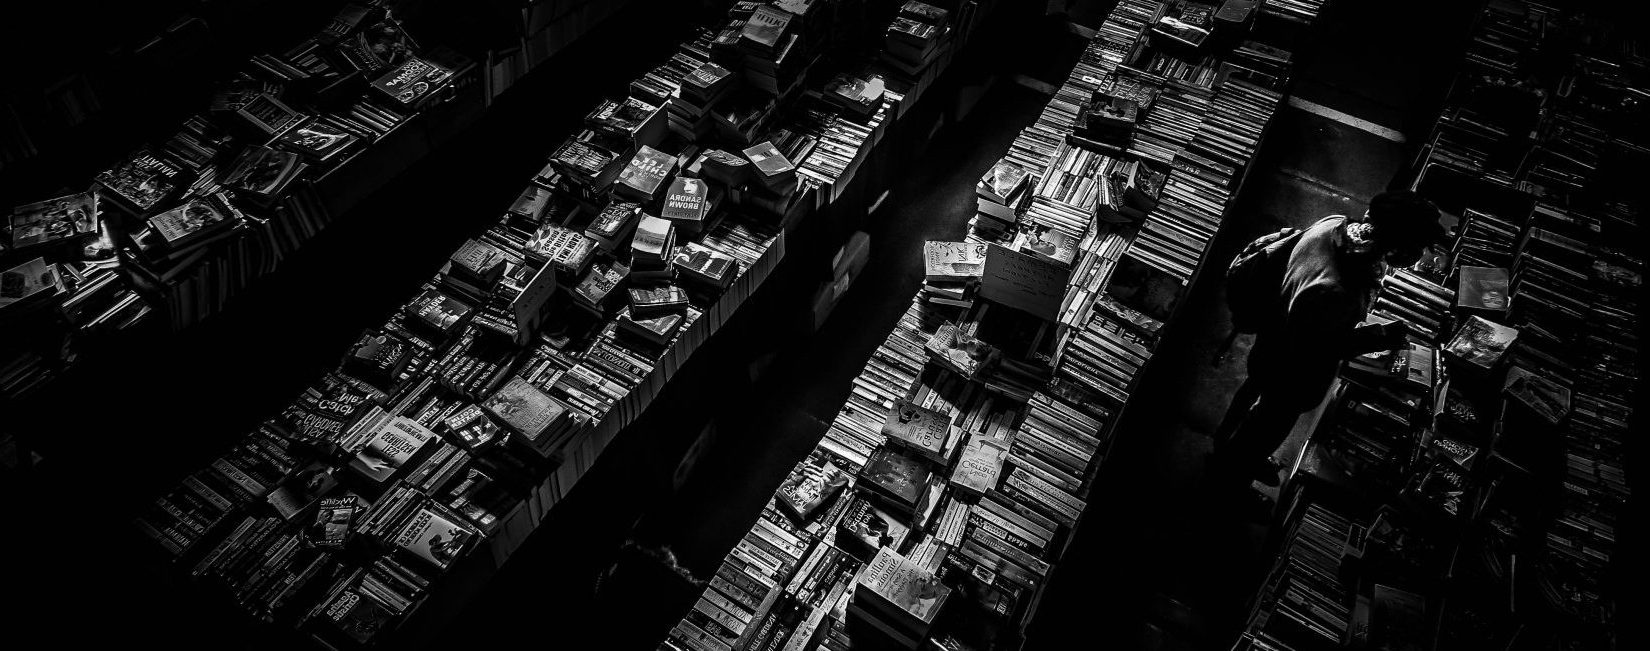 Book Store Mike Wilson Black and White